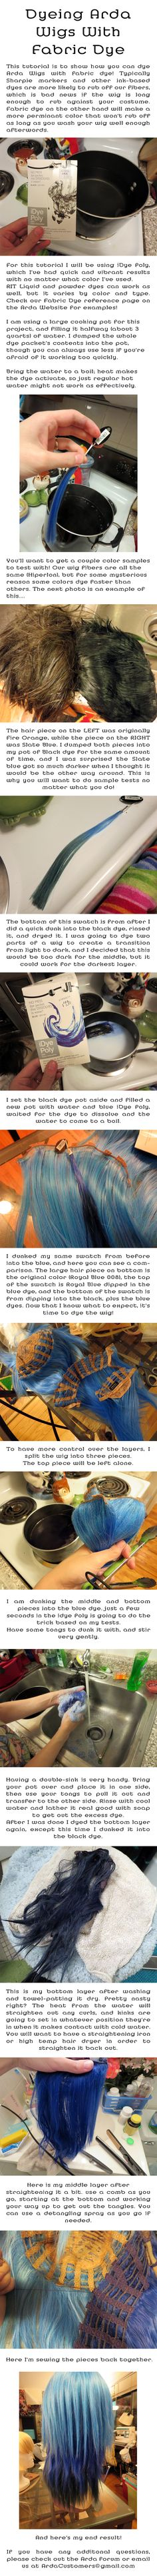 Wig Dye Tutorial by Malindachan.deviantart.com on @deviantART